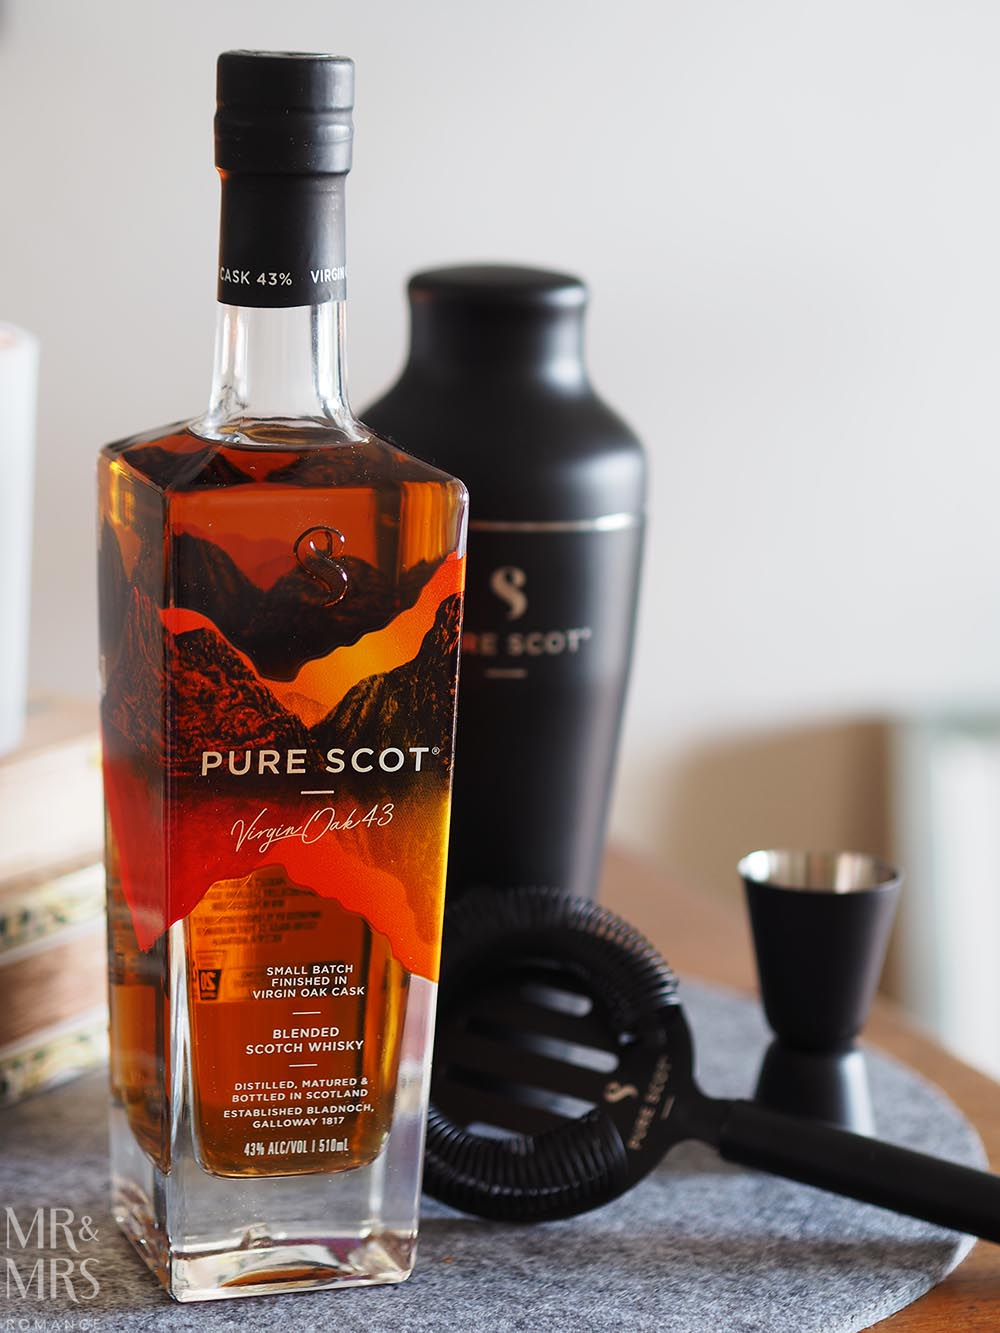 Romantic gifts - Pure Scot cocktail kit